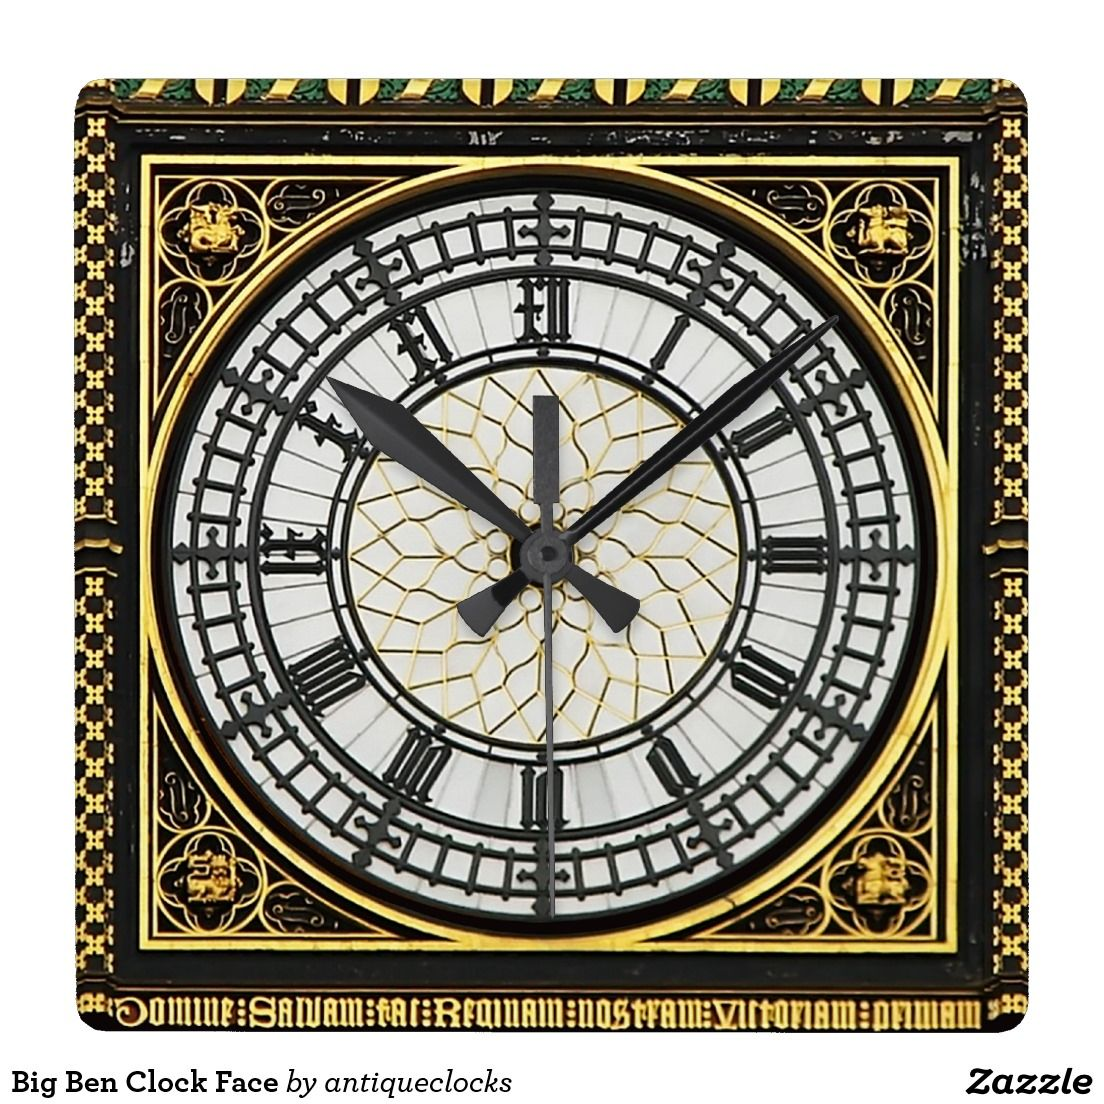 Coole Wanduhren Big Ben Clock Face Quadratische Wanduhr Zazzle De Uhren